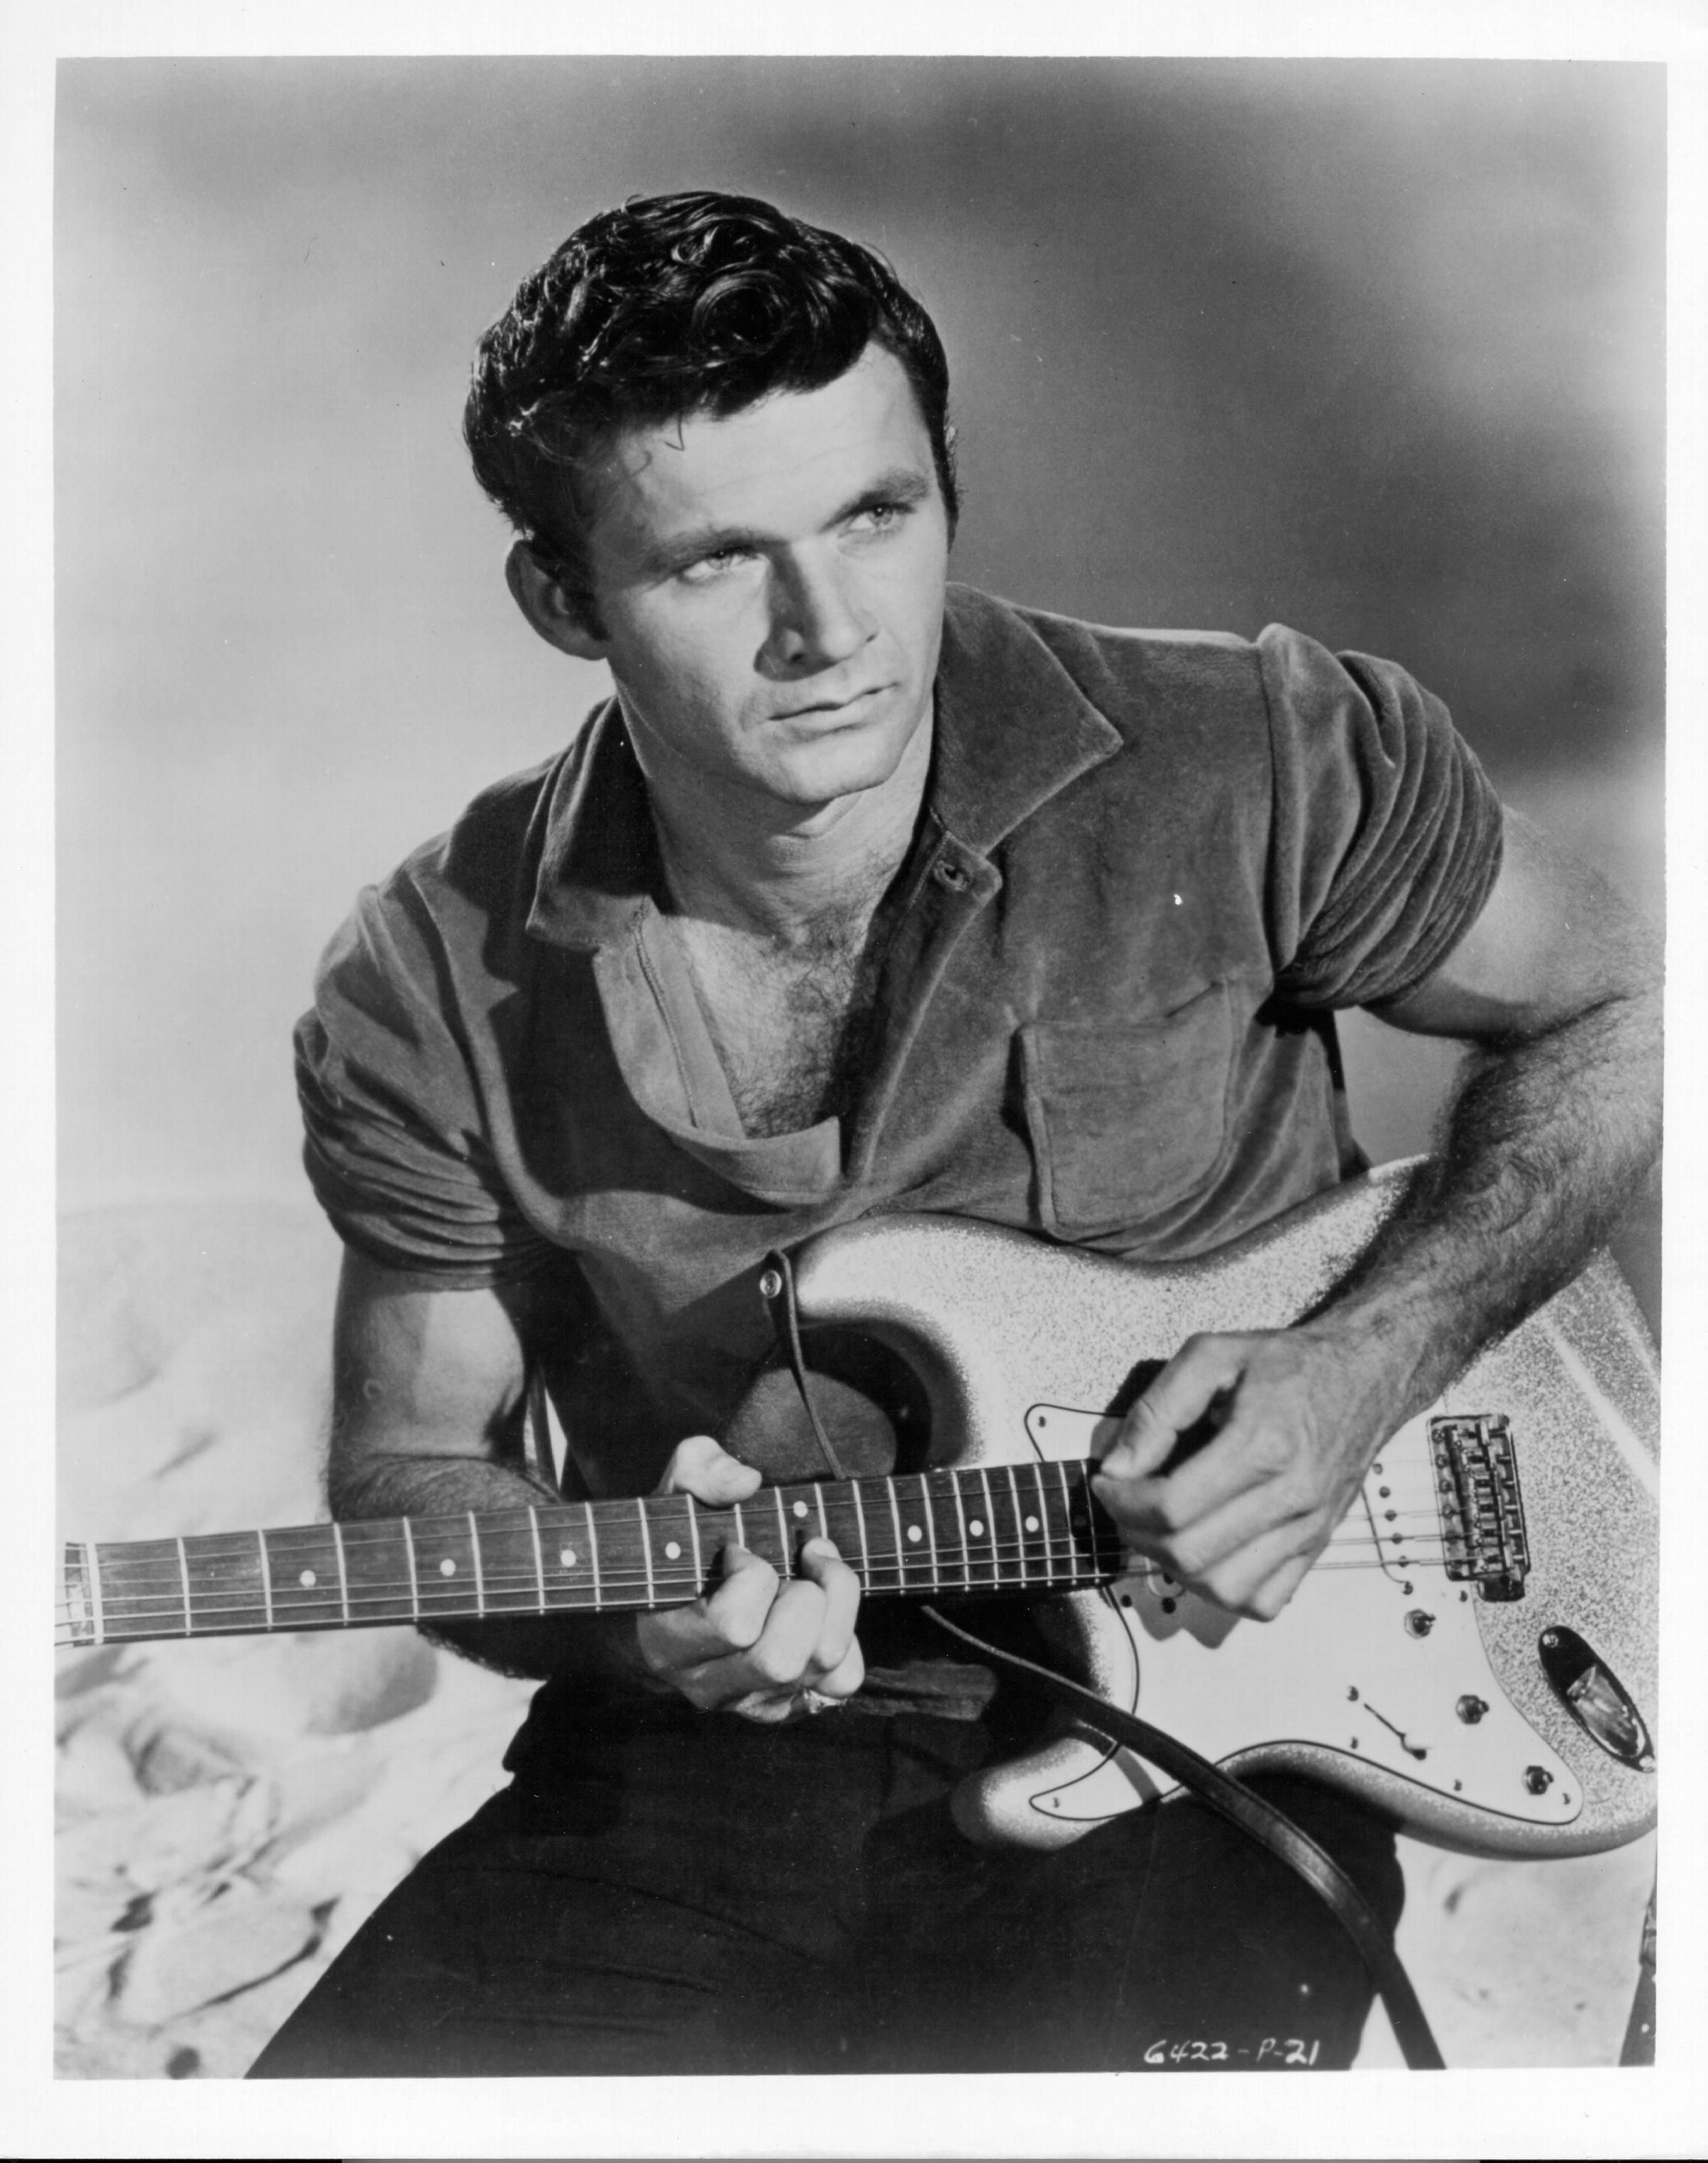 Was that dick dale